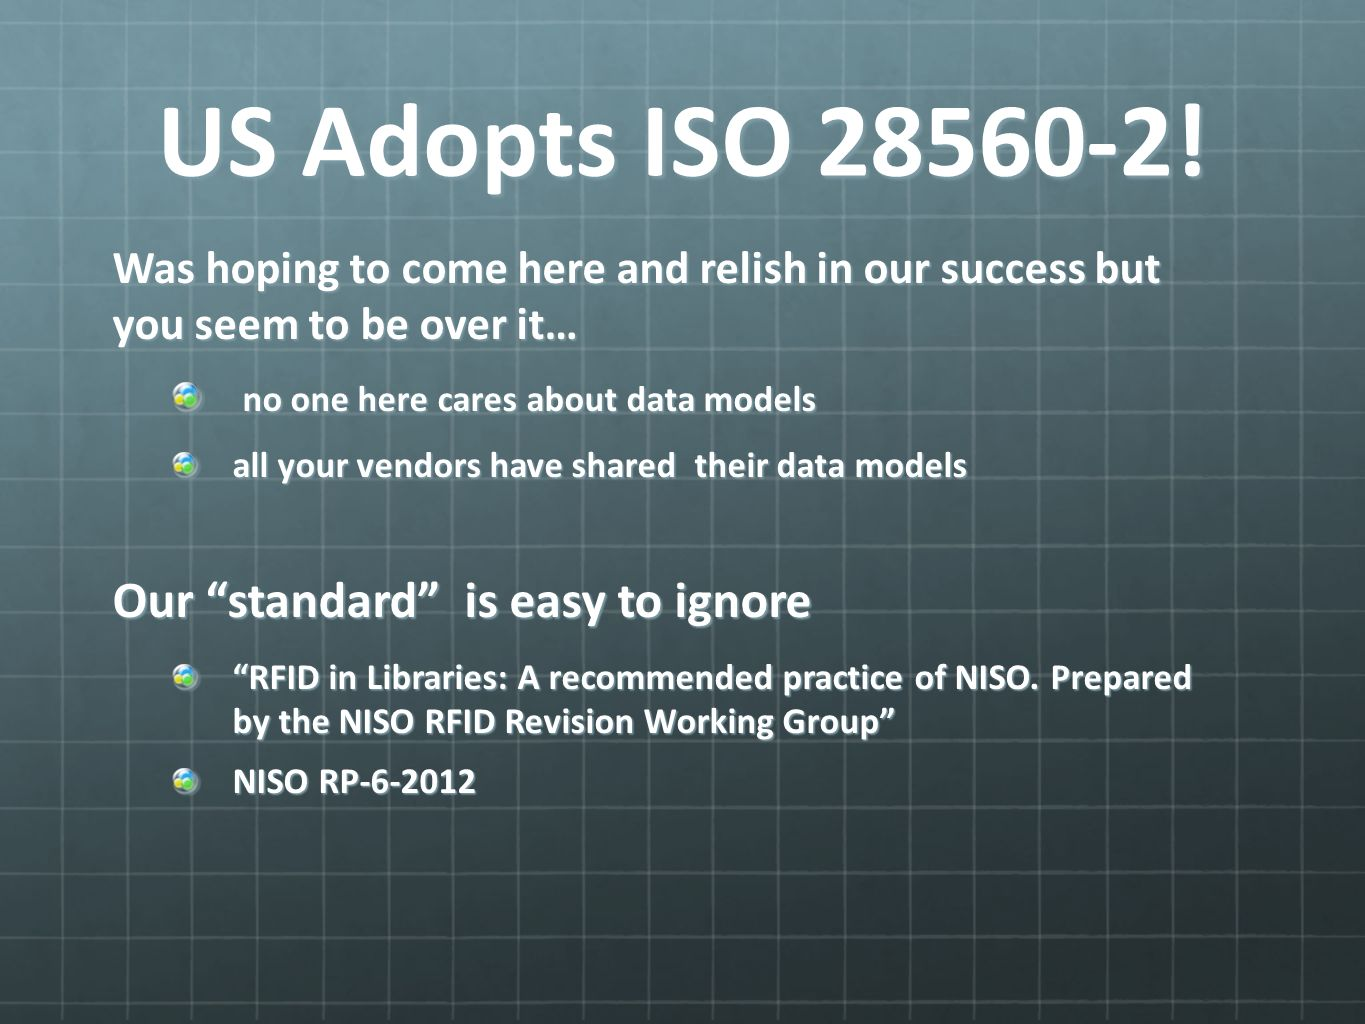 US Adopts ISO 28560-2.